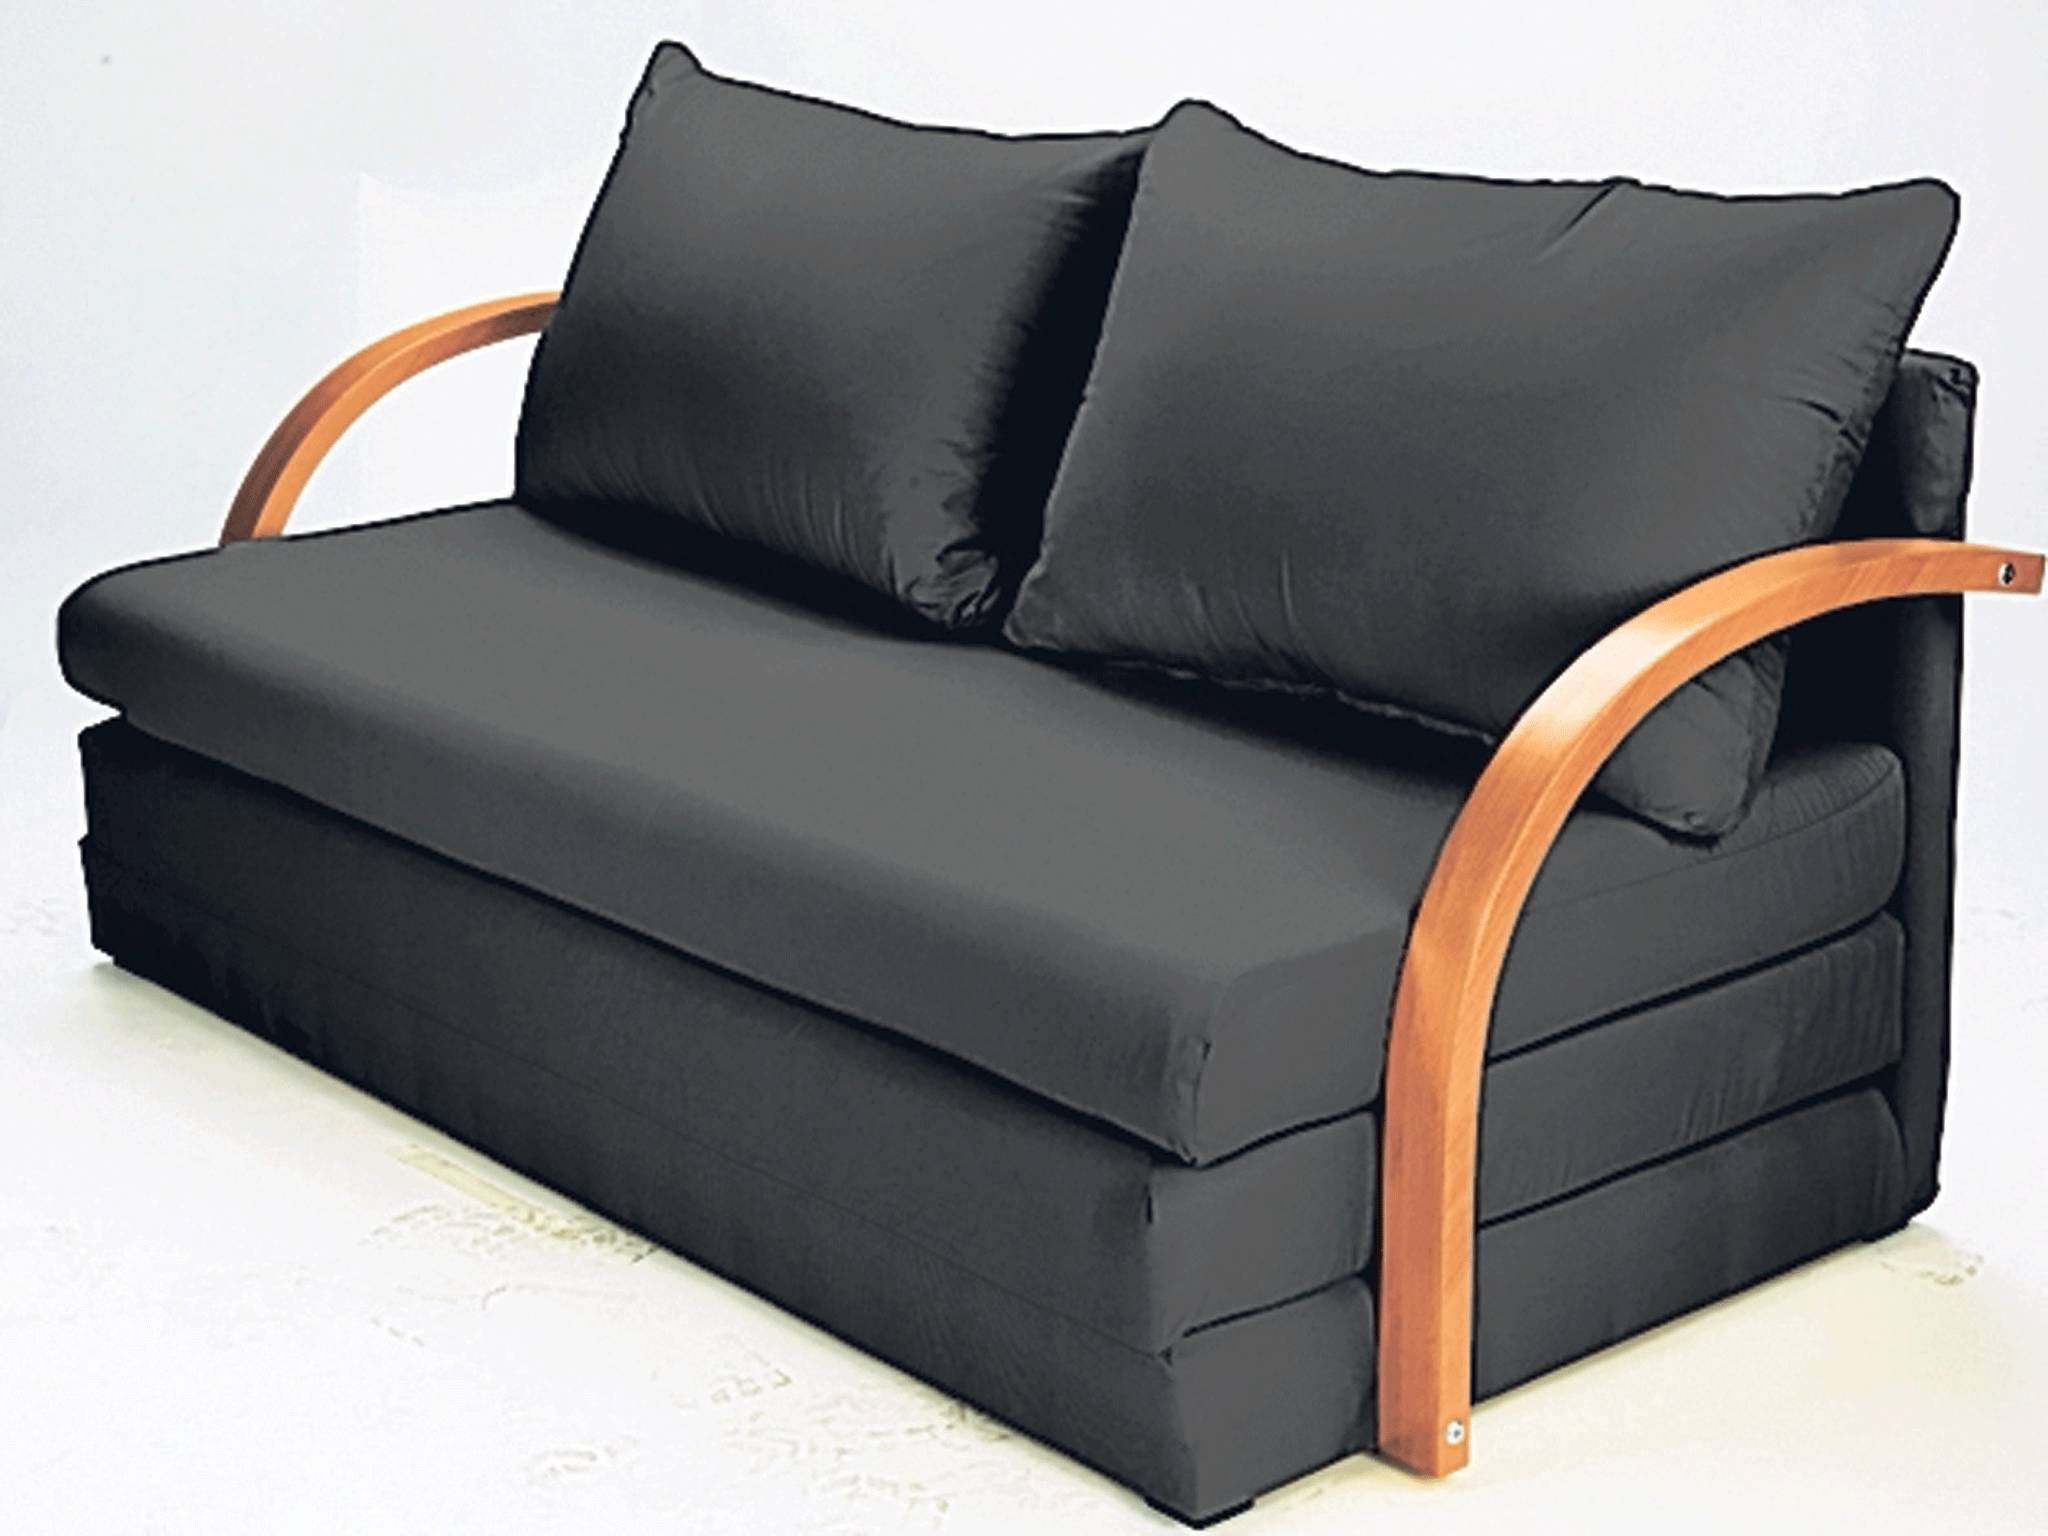 Trendy Furniture Unique Sleeper Chair Ideas For Fold Out Sofa Bed Intended For Cool Sofa Beds (Image 14 of 15)